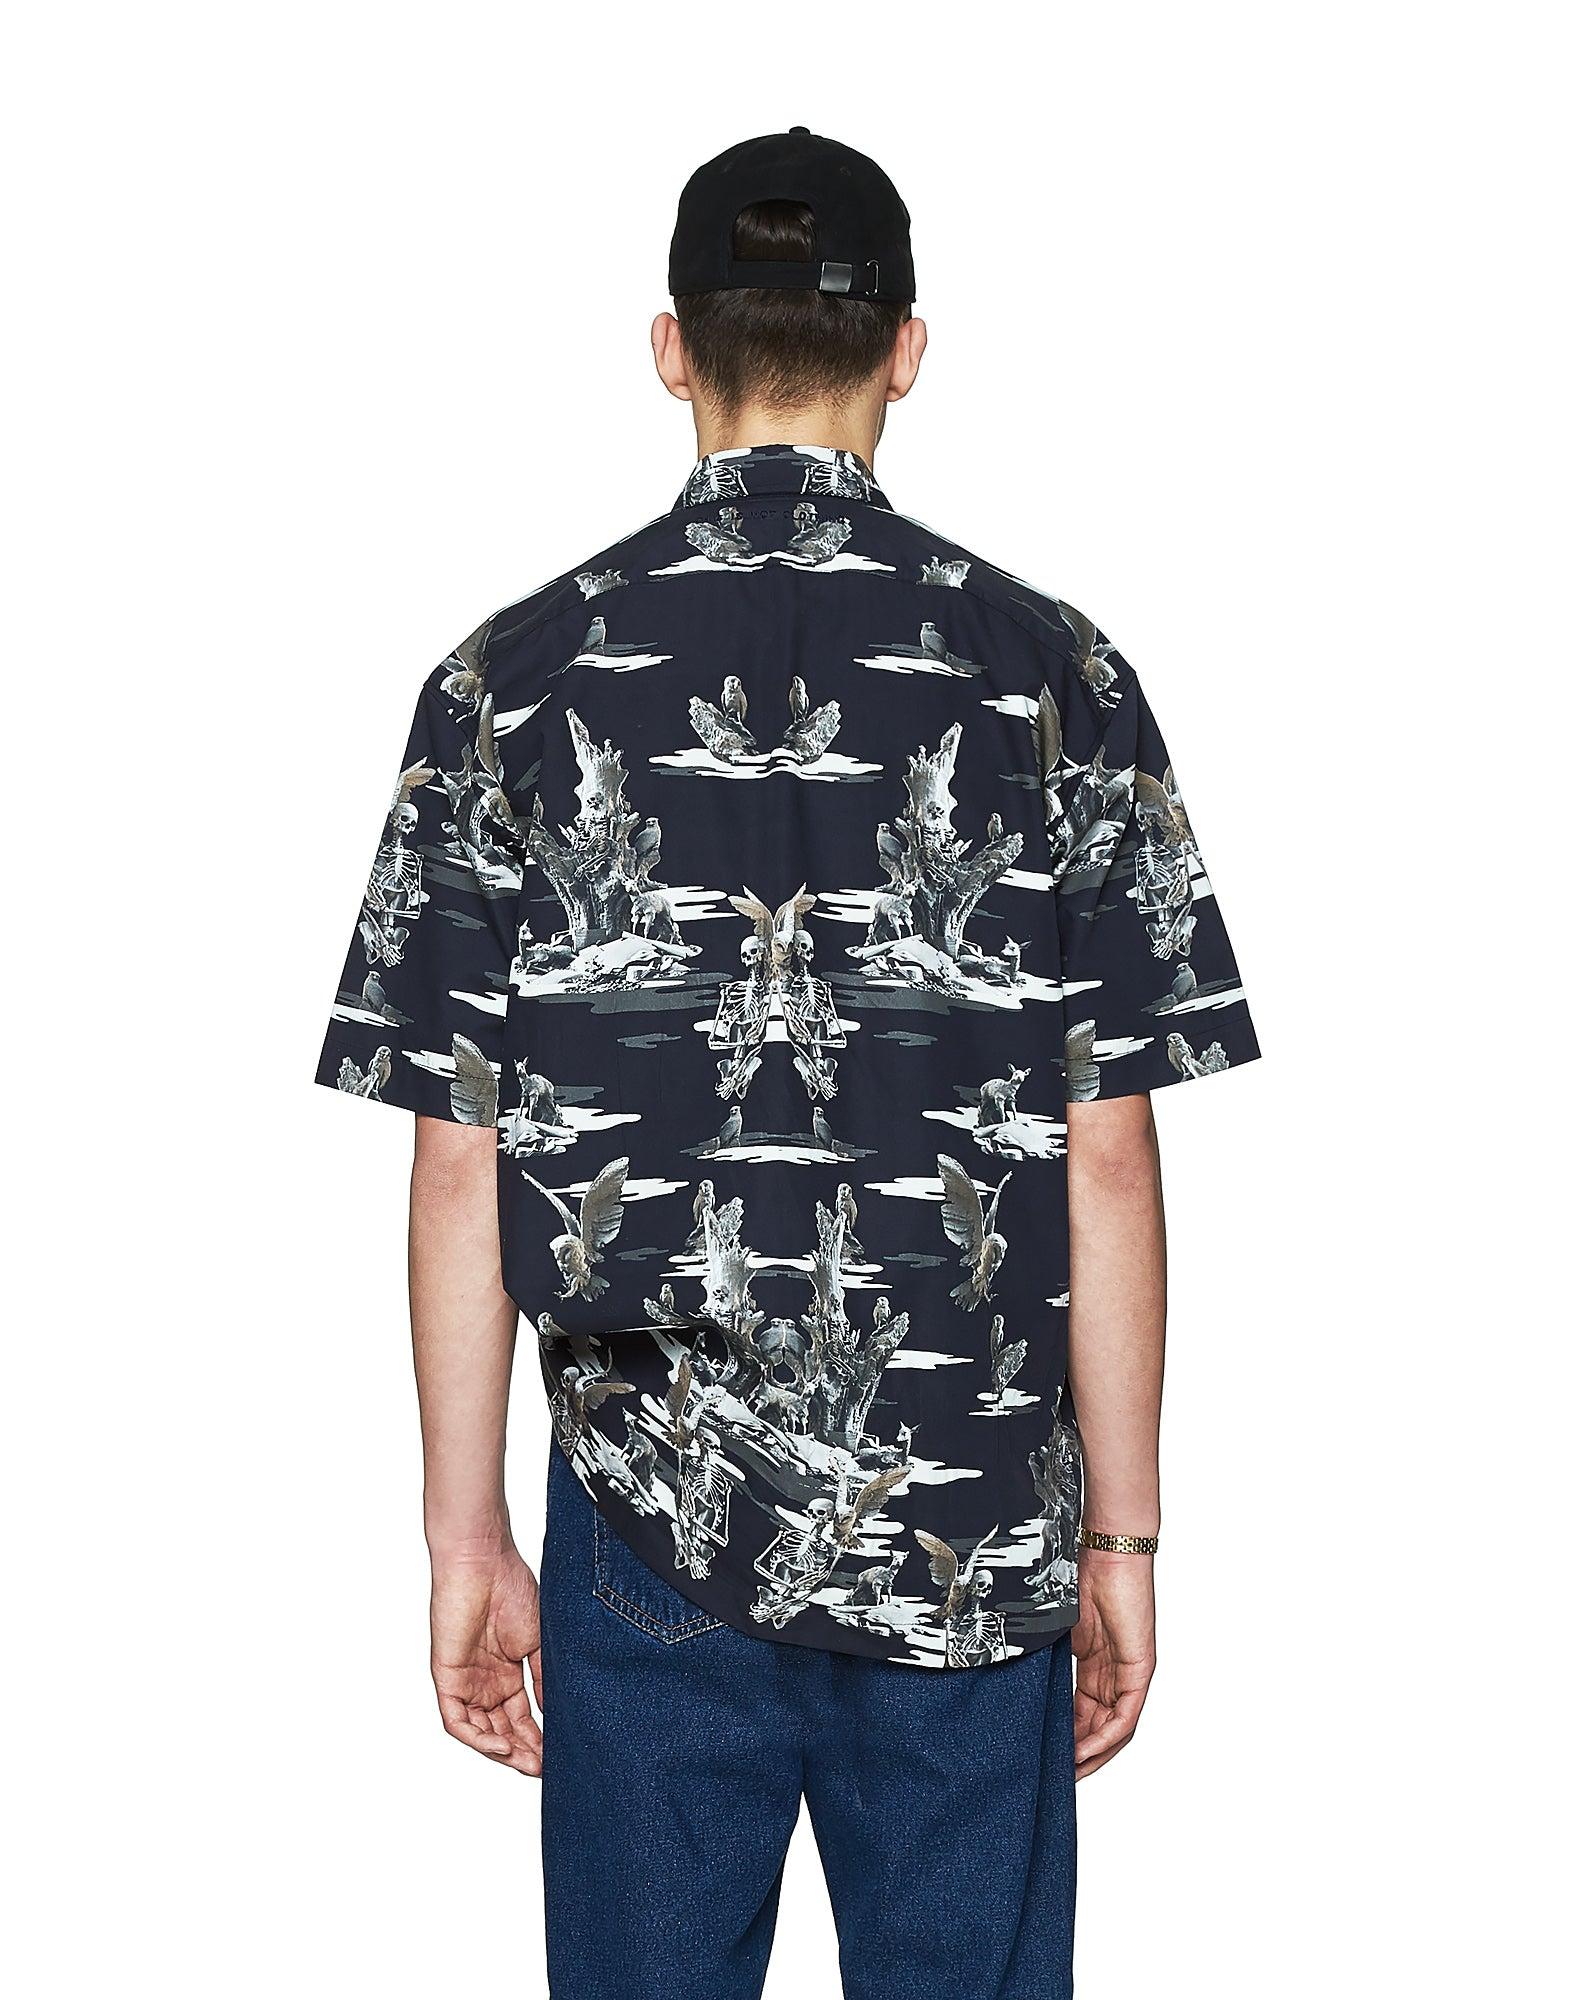 Paradise Camo Shirt - Men's Designer Brand - This Is Not Clothing - Lookbook Photo 3